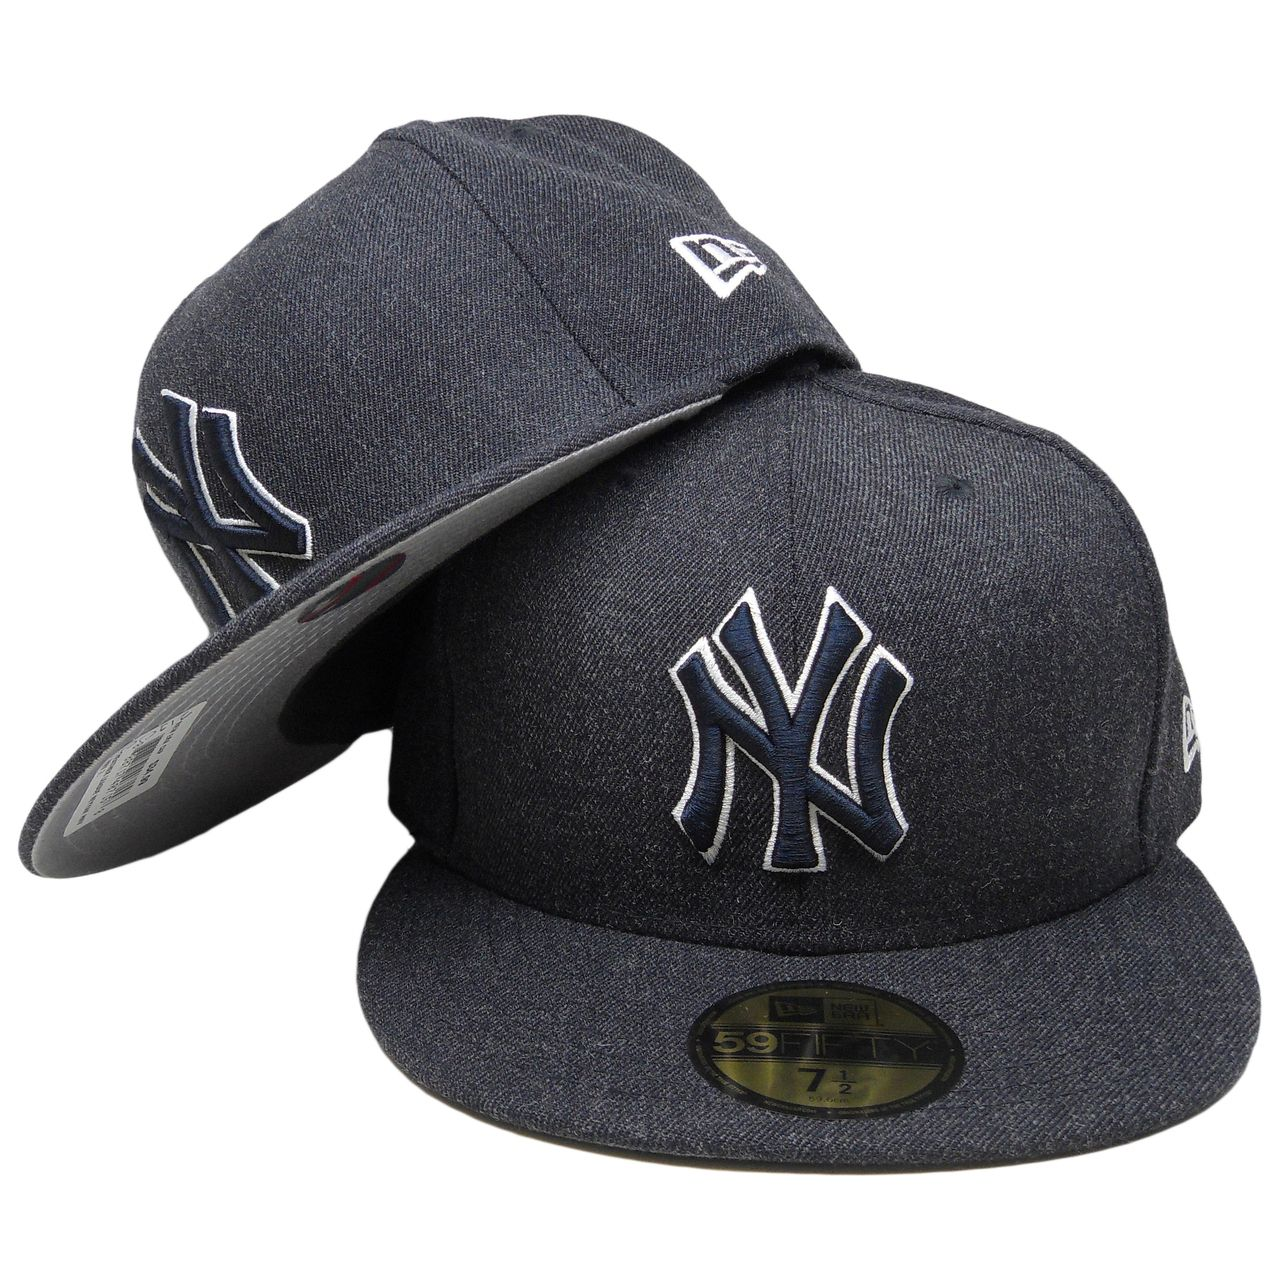 440d09da60546 New York Yankees MLB fitted hat from New Era Heather League Collection  features woven acrylic and wool in all dark navy with